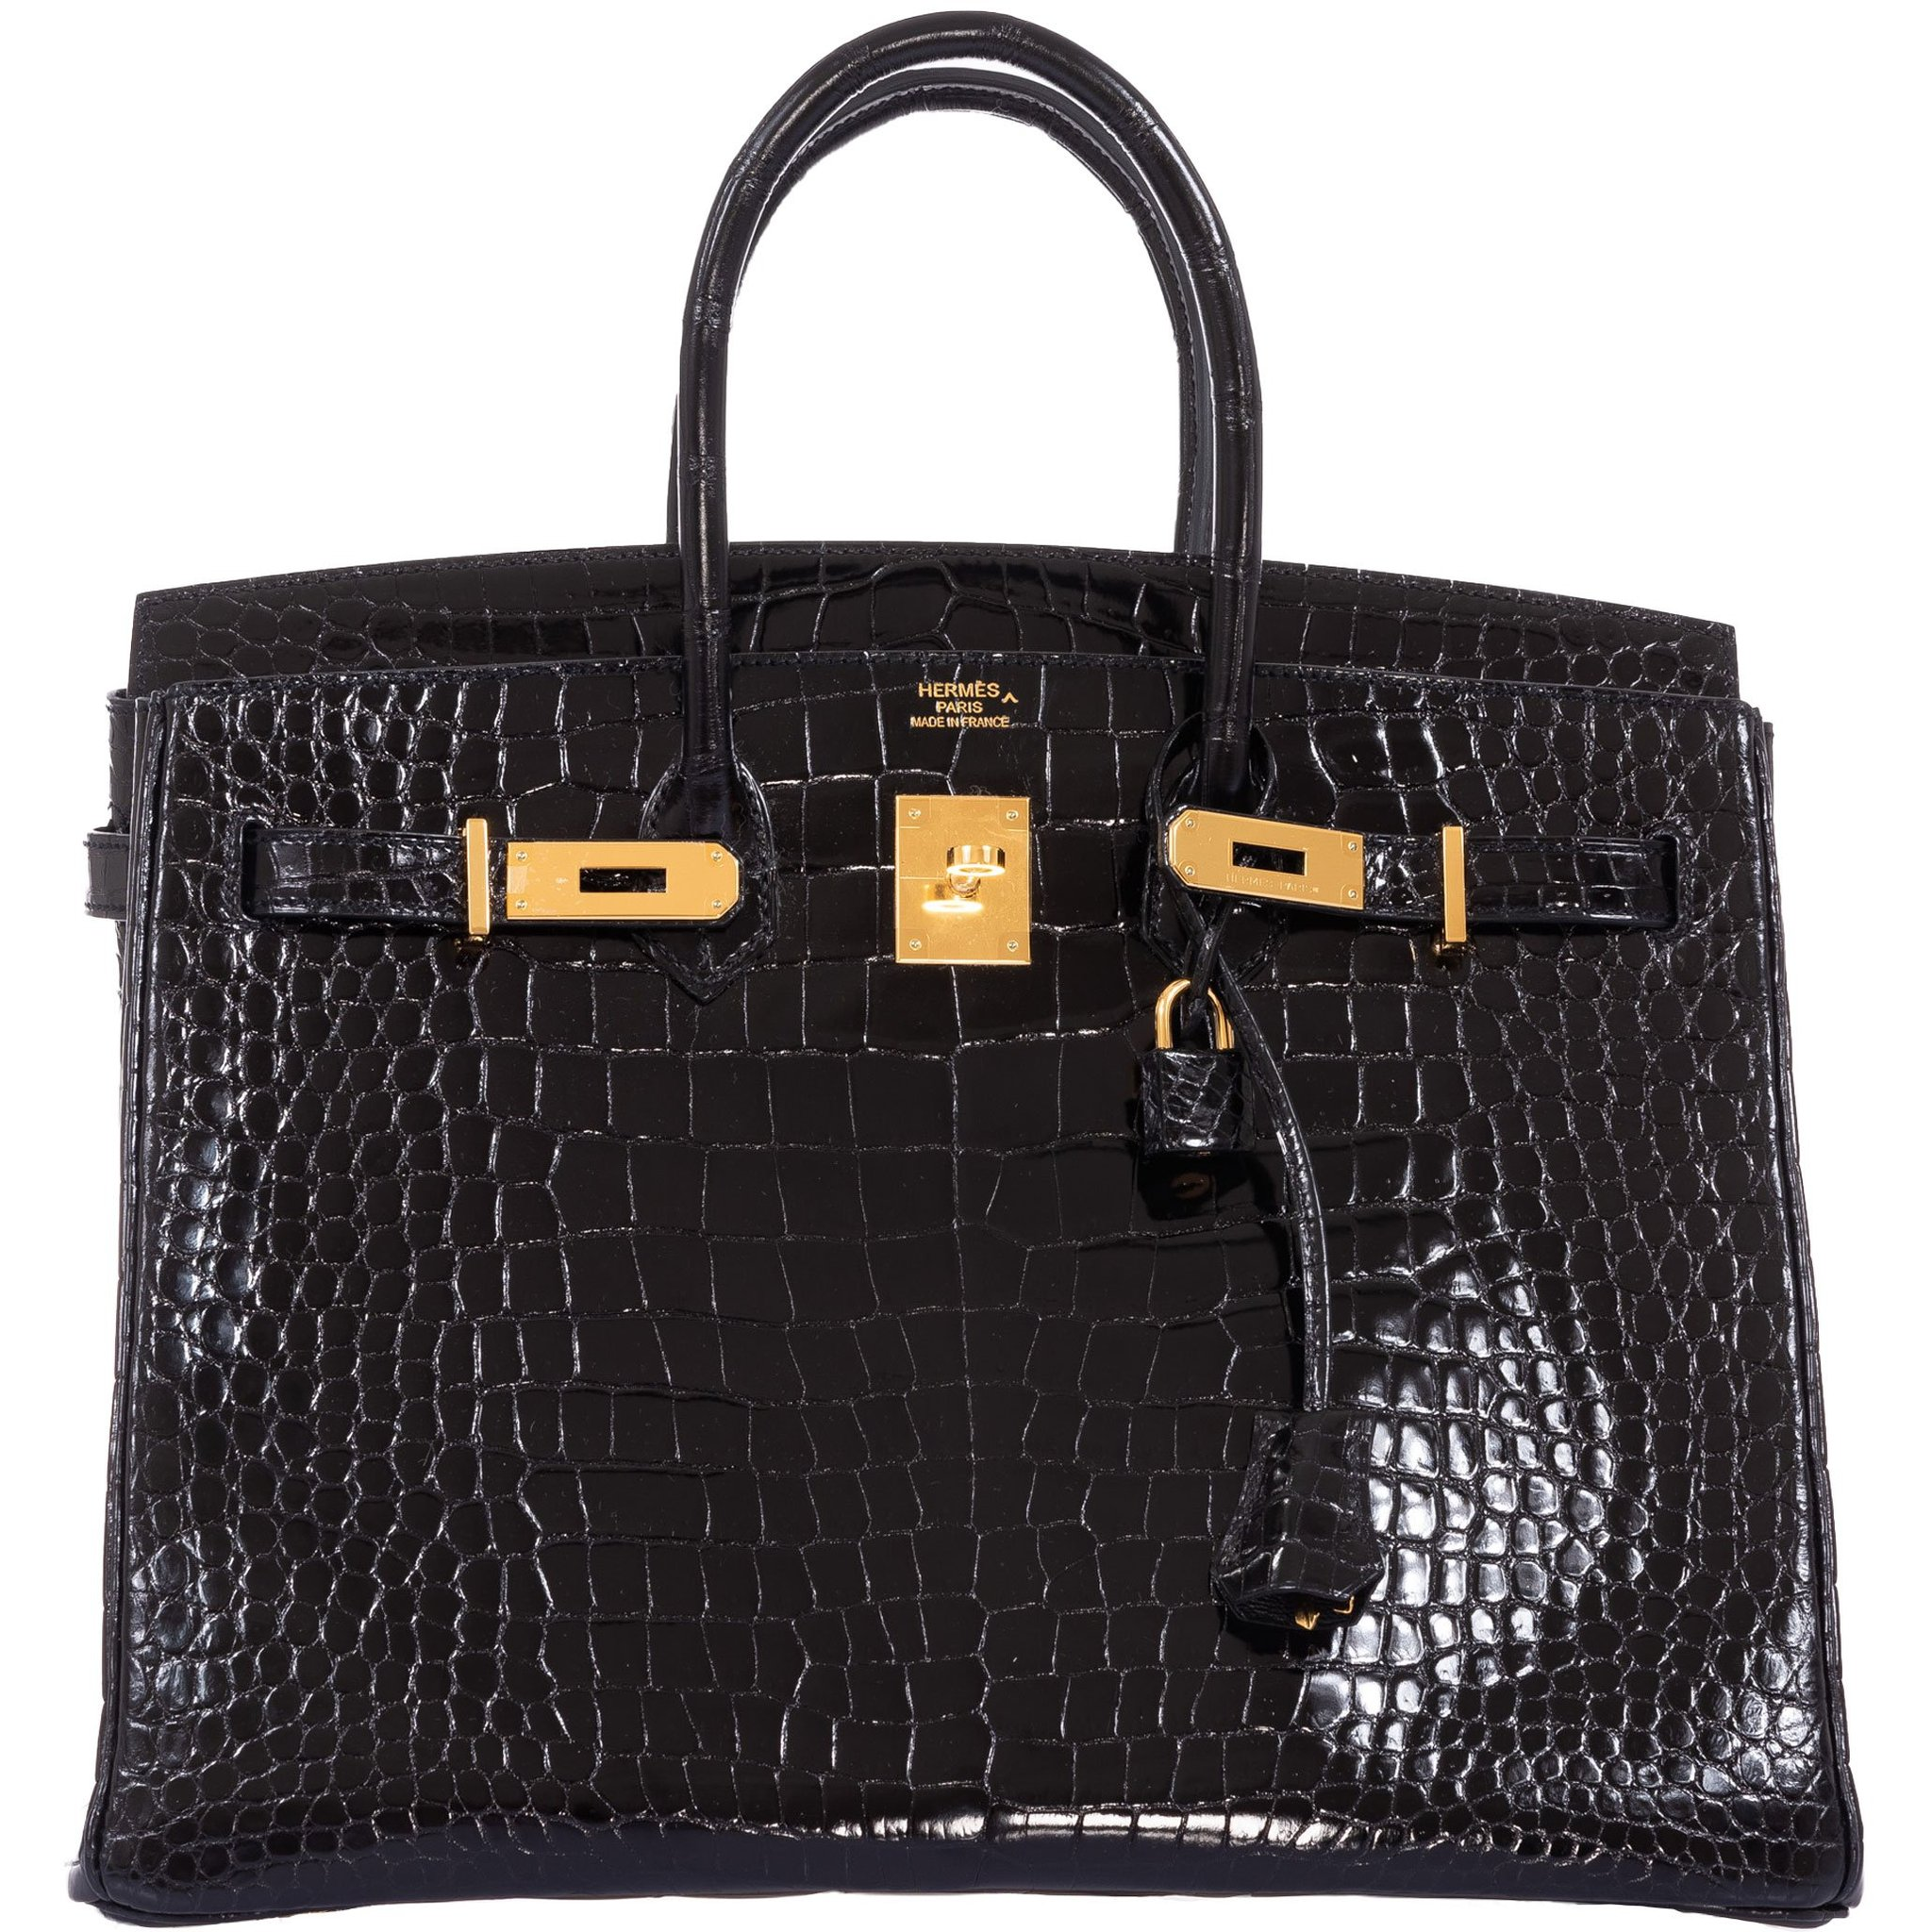 Hermes Birkin 35 Black Shiny Porosus Crocodile Gold Hardware